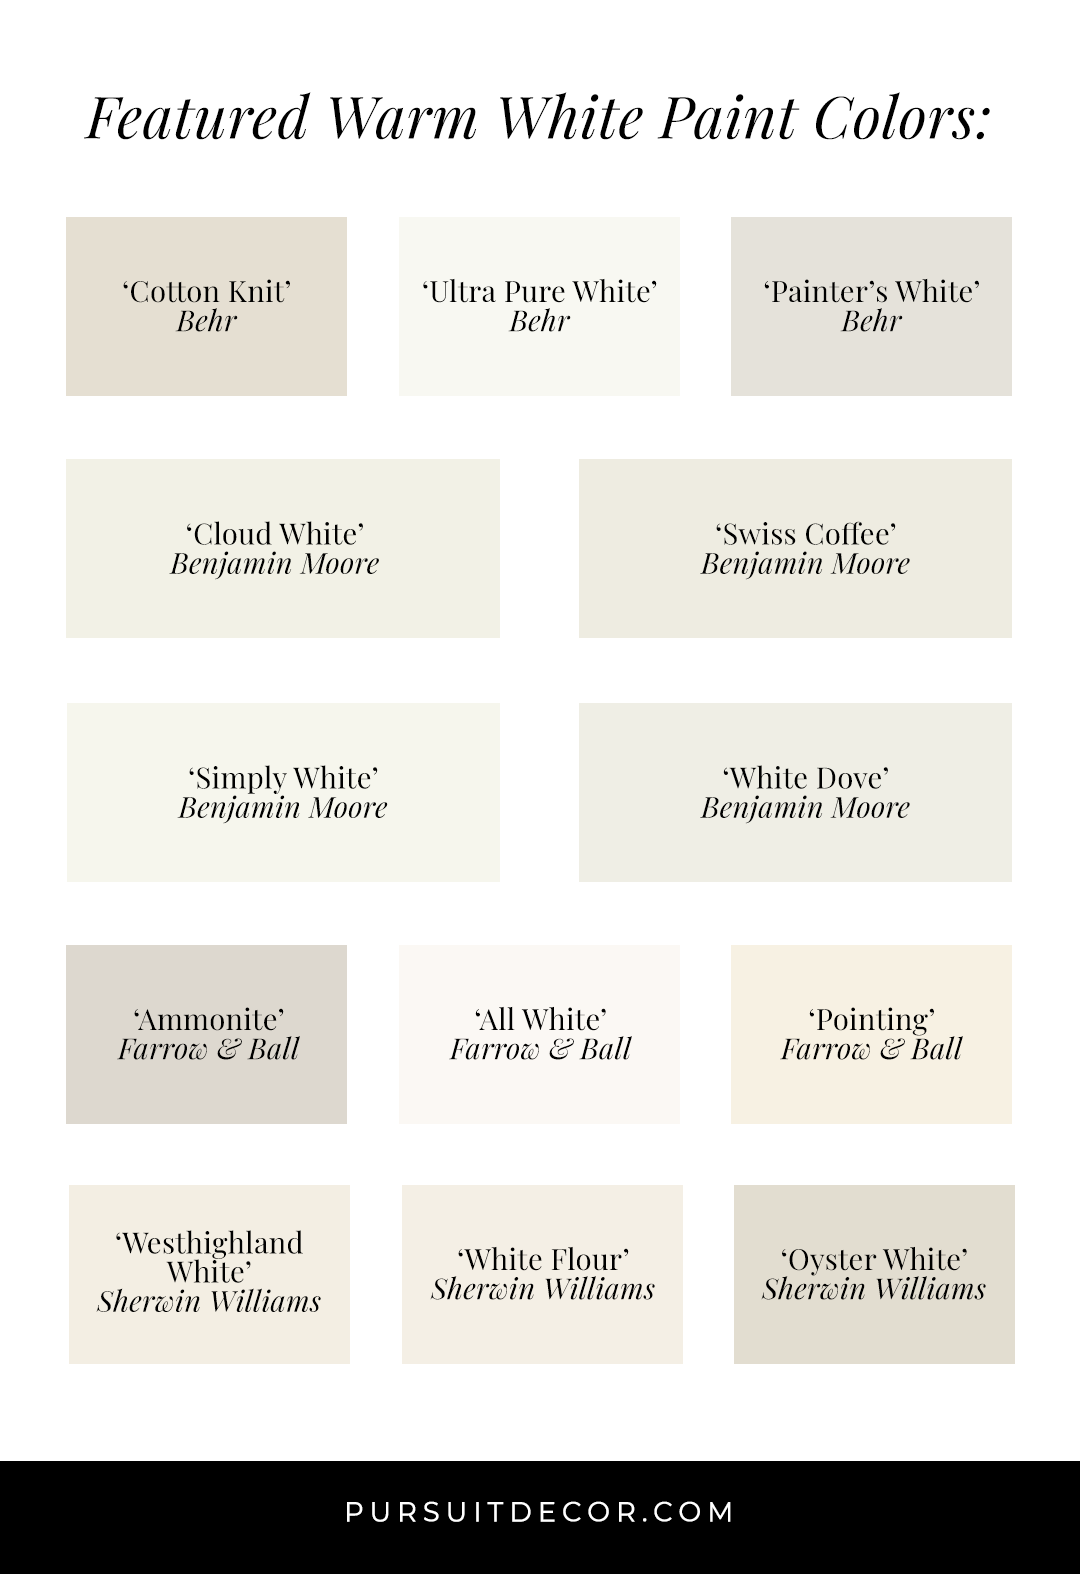 10+ Best Warm White Paint Colors in Action (by Brand) - Behr, Benjamin Moore, Farrow & Ball, Sherwin Williams